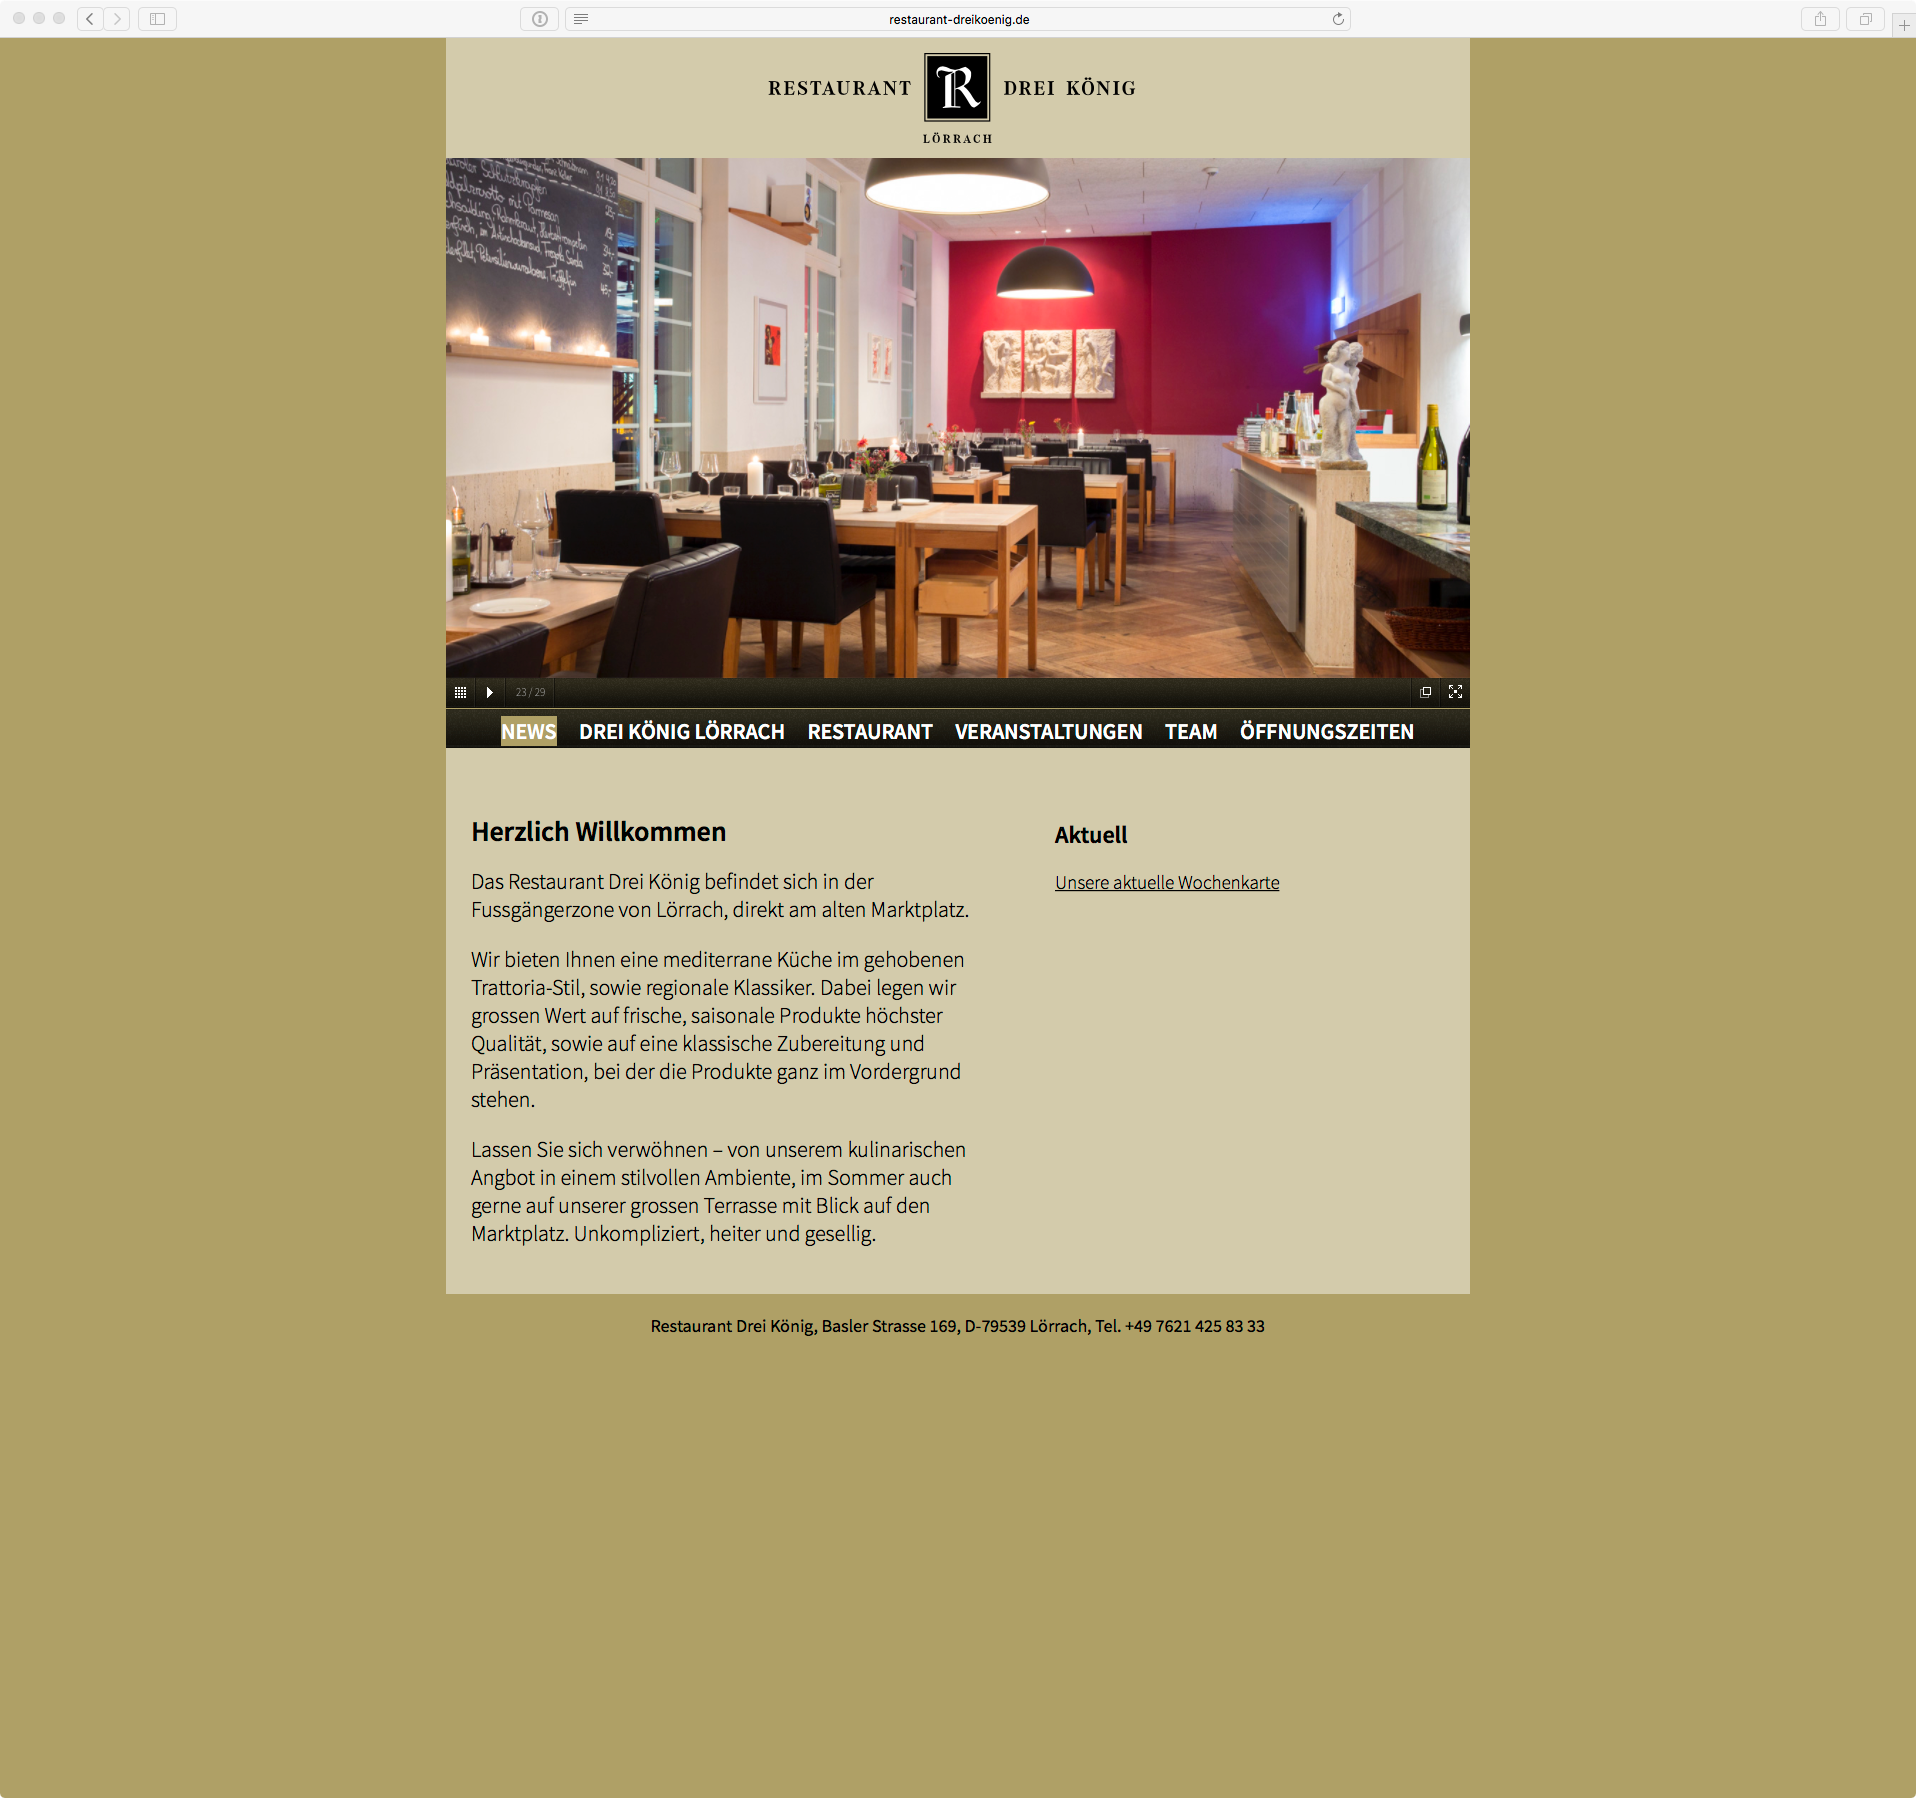 zweiwest/kommunikation, Simon Havlik, Basel - Website Restaurant ...